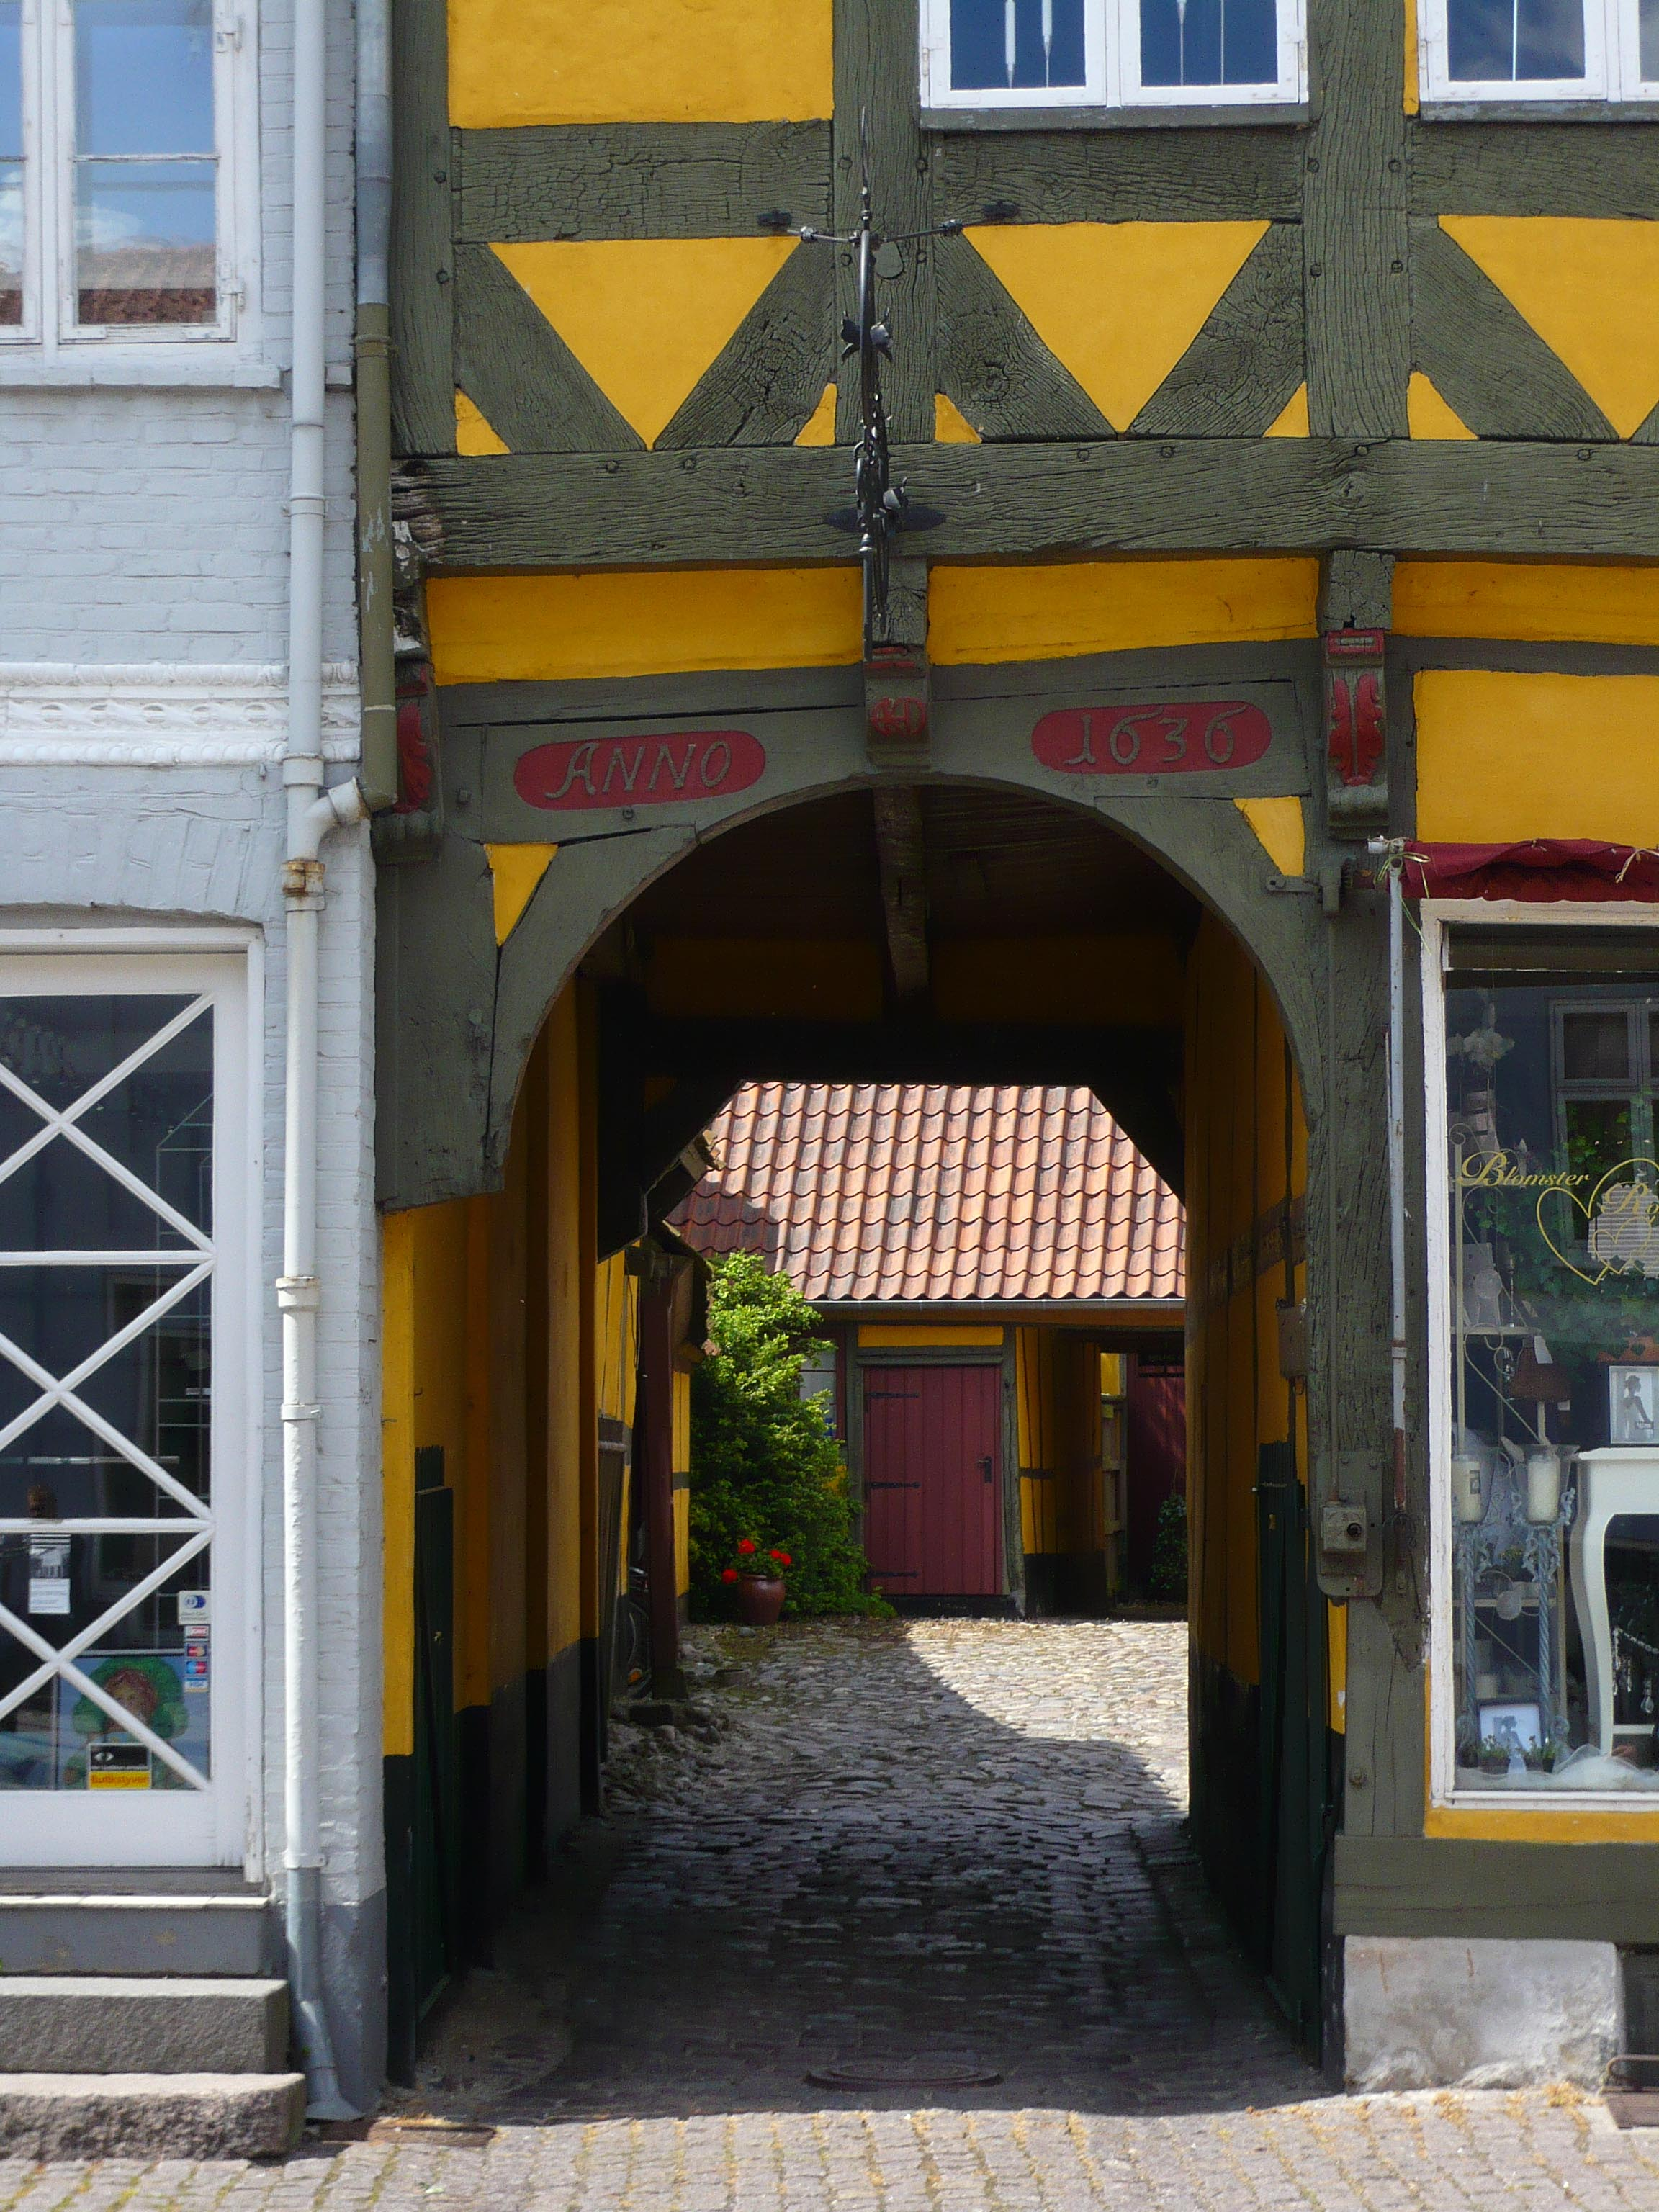 A 17th-century timber-framed building in Køge, south of Copenhagen